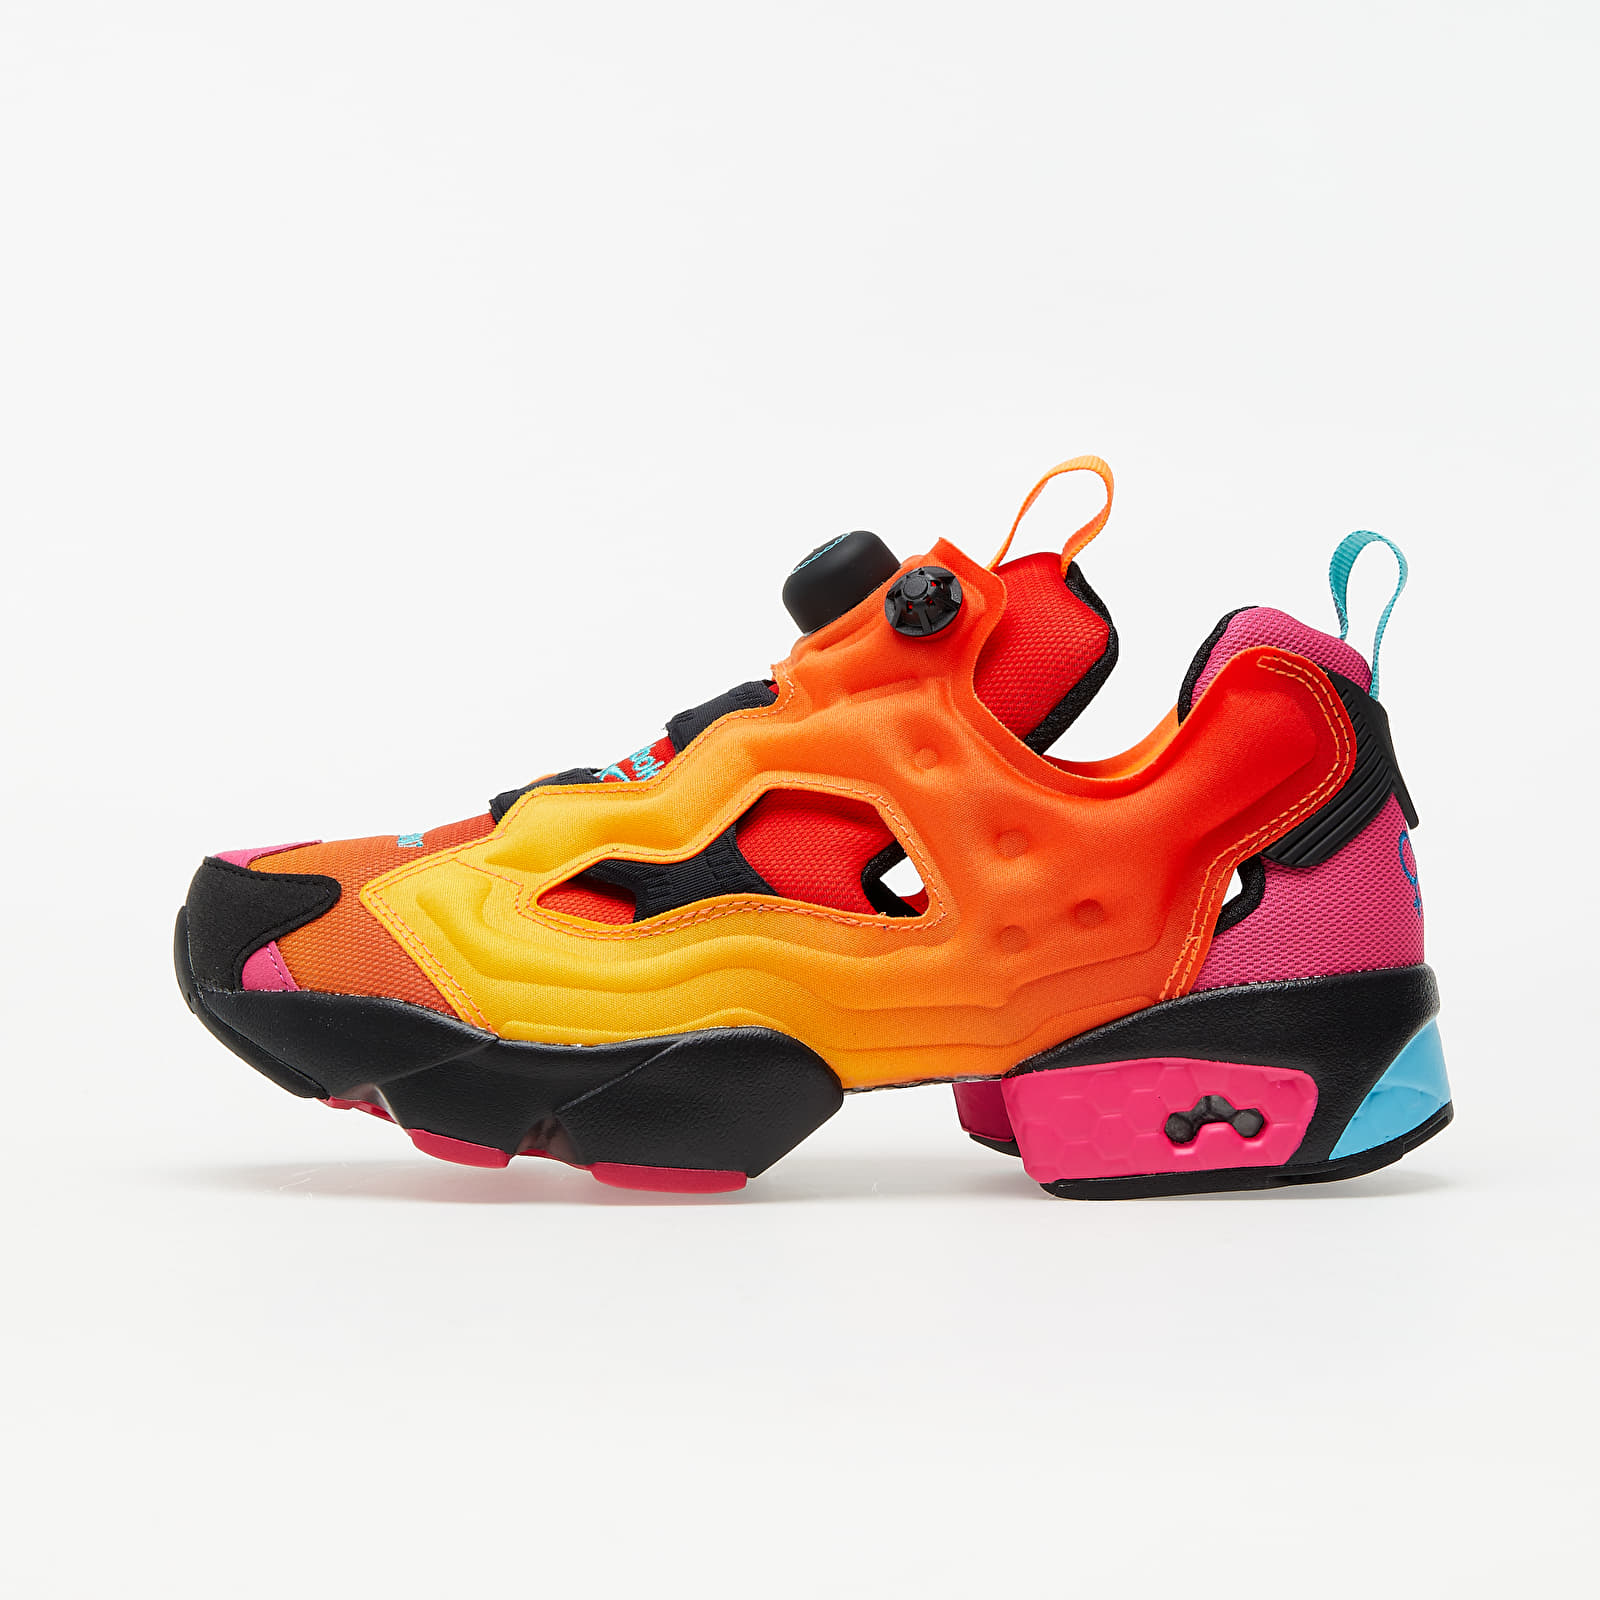 Zapatillas Hombre Reebok Instapump Fury Semi Orange/ Ale Yellow/ Black